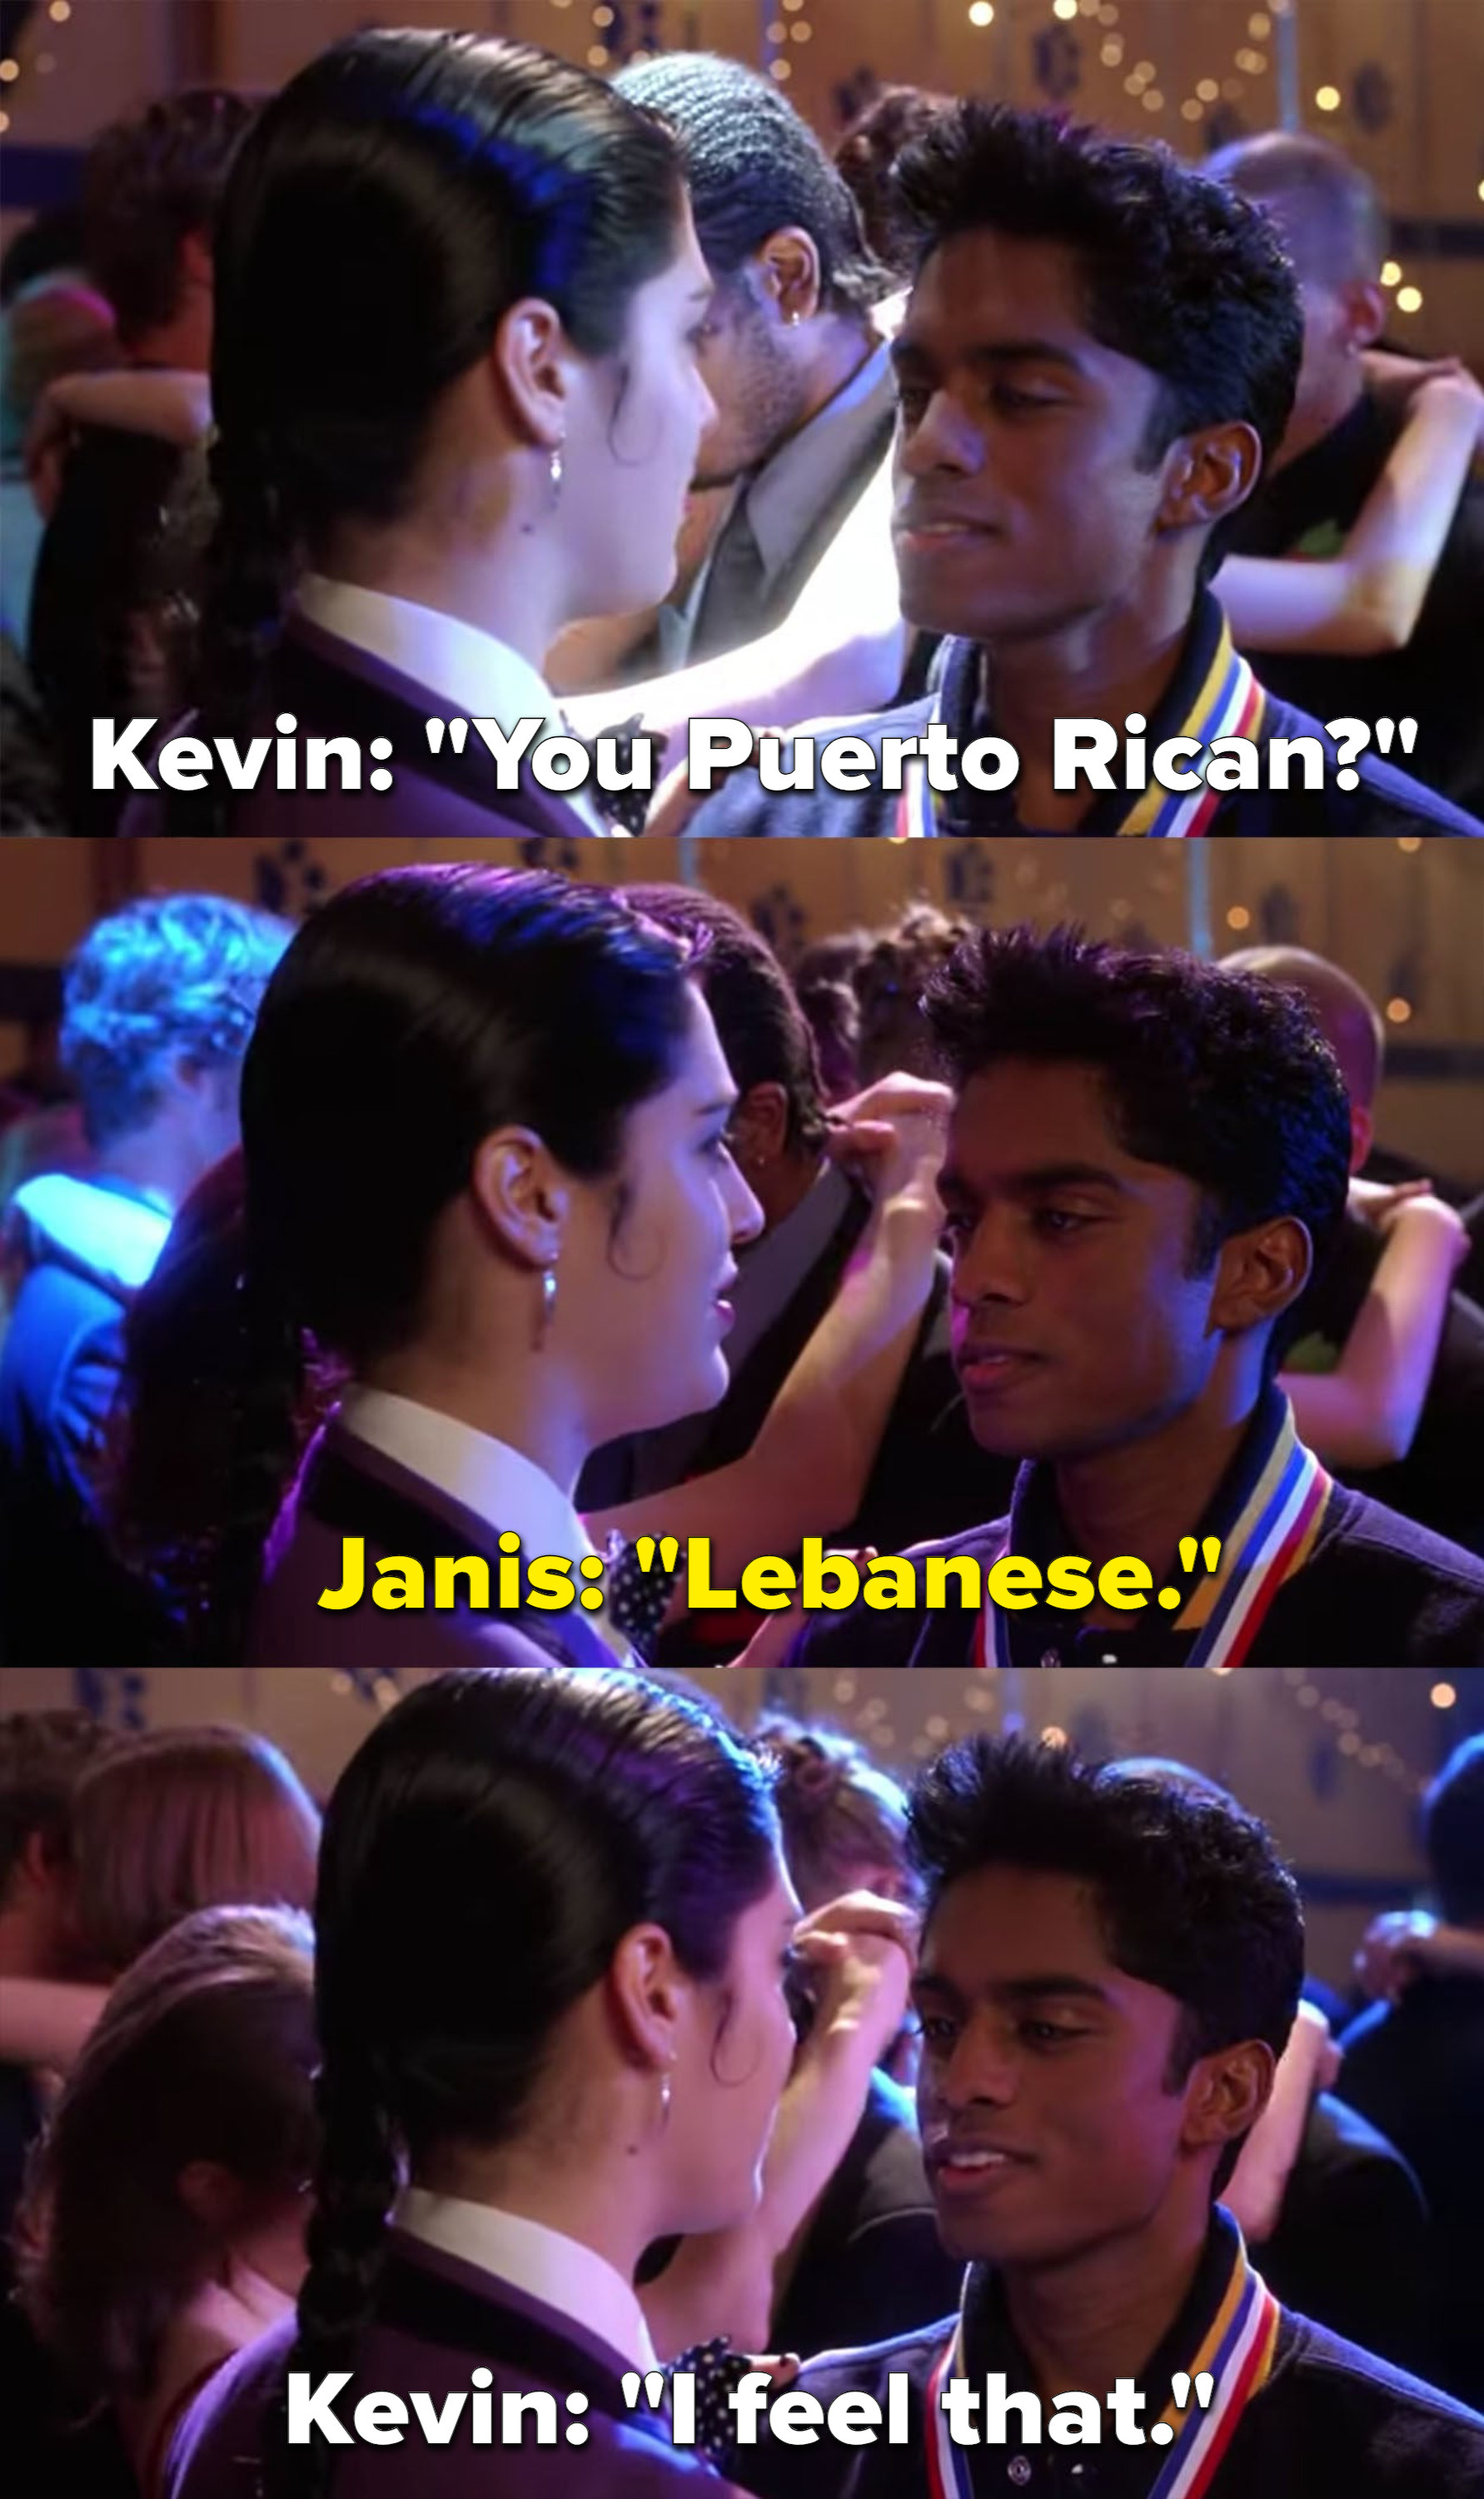 """When Kevin asks Janis if she's Puerto Rican and she responds that she is Lebanese, Kevin replies """"I feel that"""""""